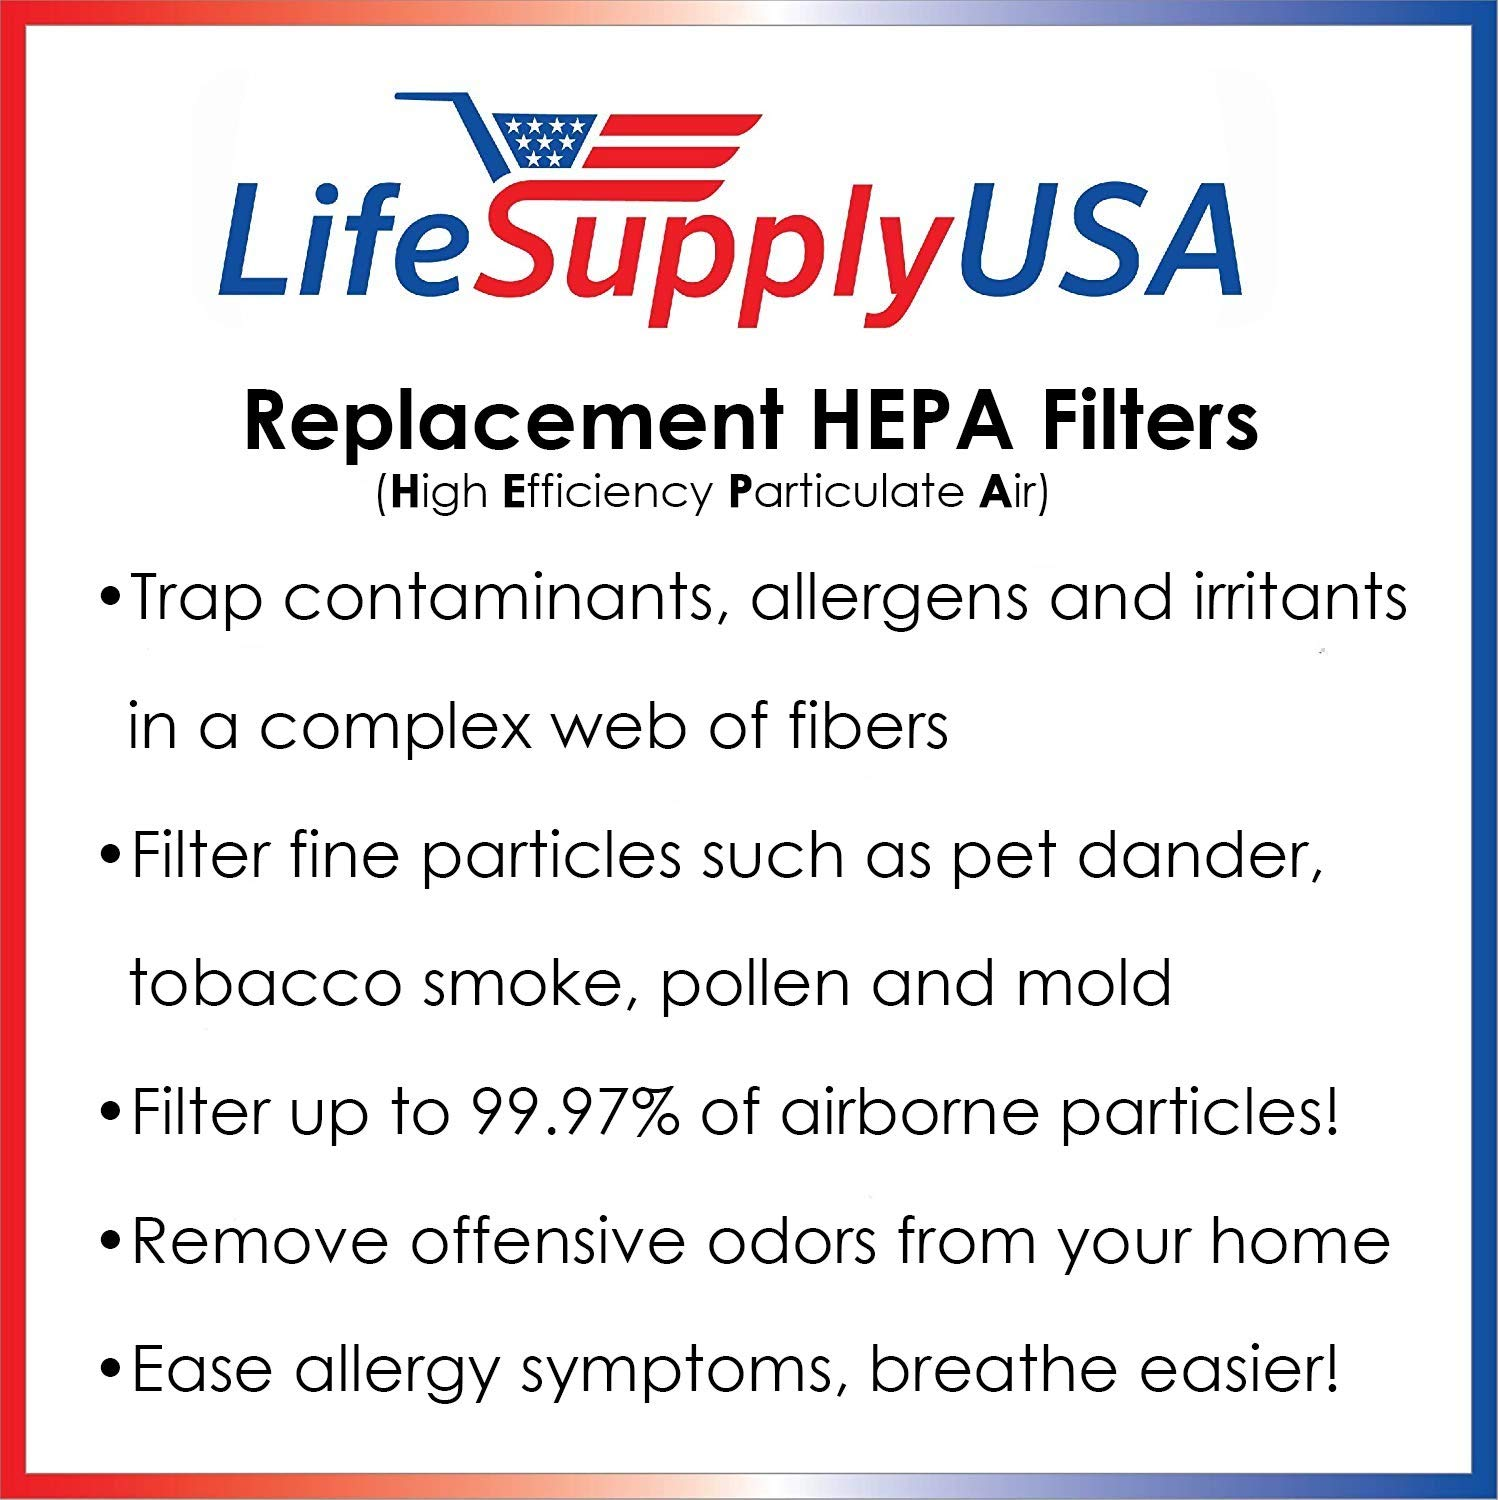 C LifeSupplyUSA 2 Pack Replacement Filter fits Honeywell HEPAClean Air Purifier Replacement Filter HRF-C2 Filter